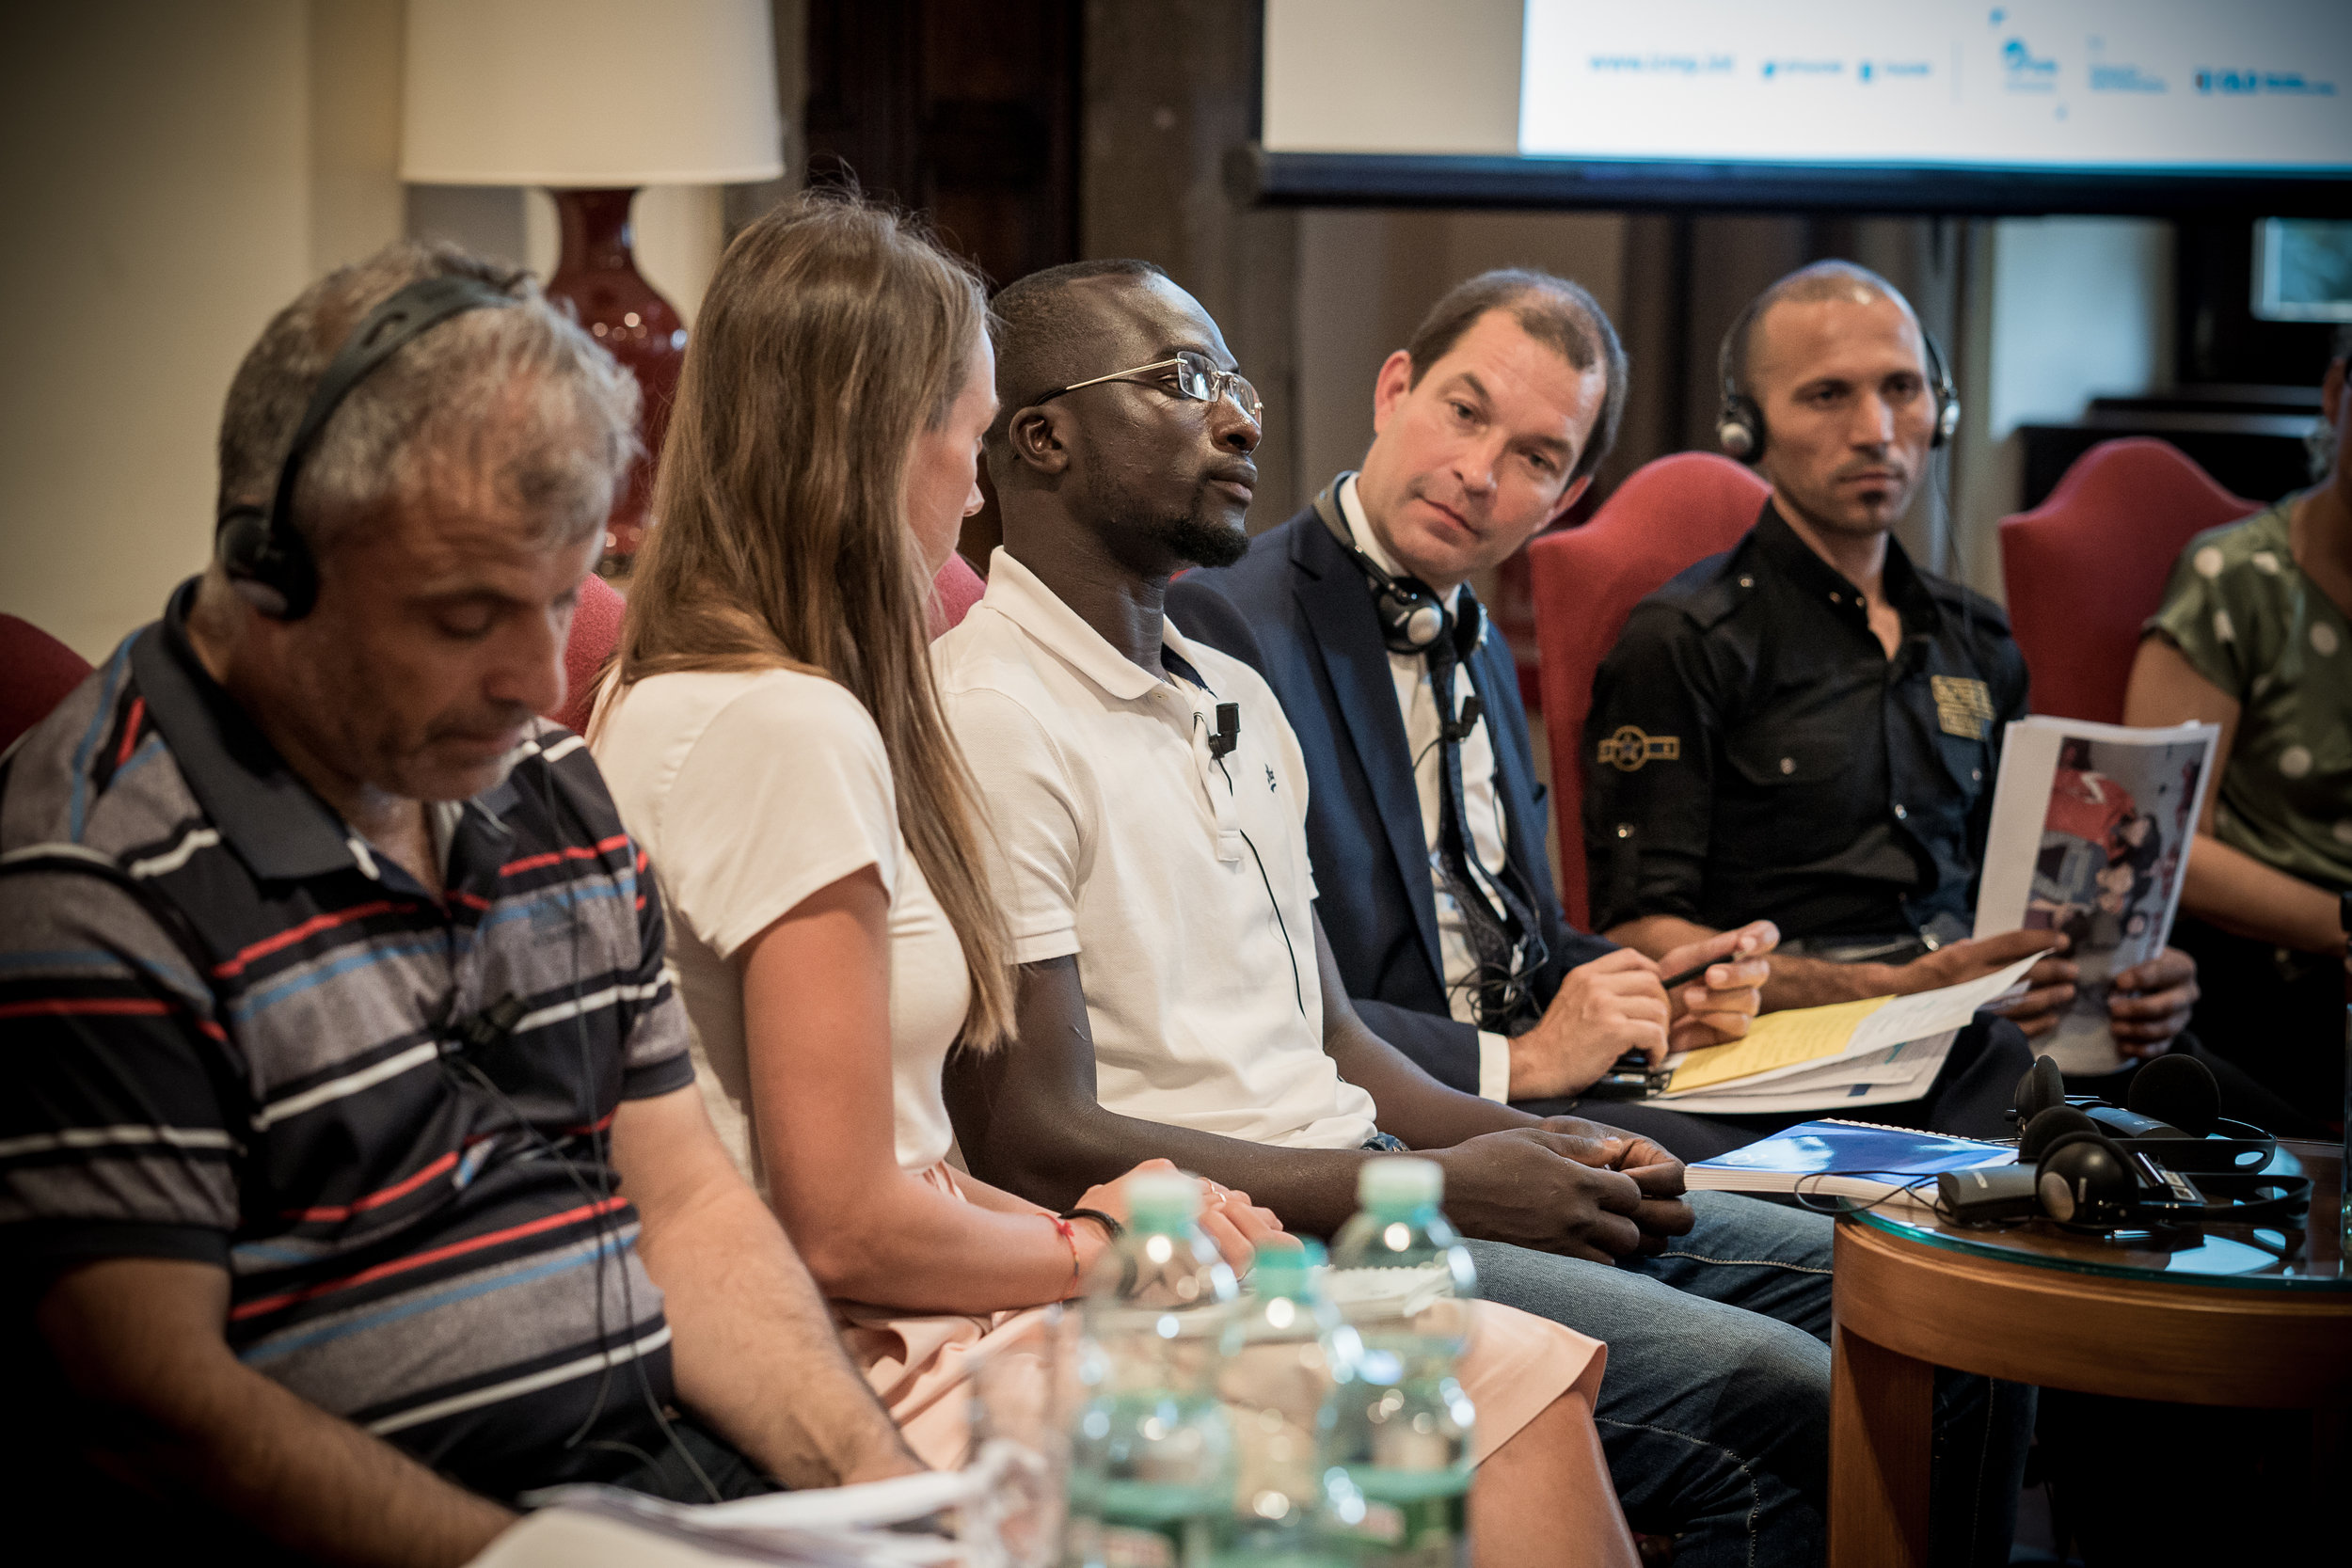 Bakary speaks at the conference; the Embassy of Switzerland, Rome. 11 June 1018. Image courtesy of the  ICMP .